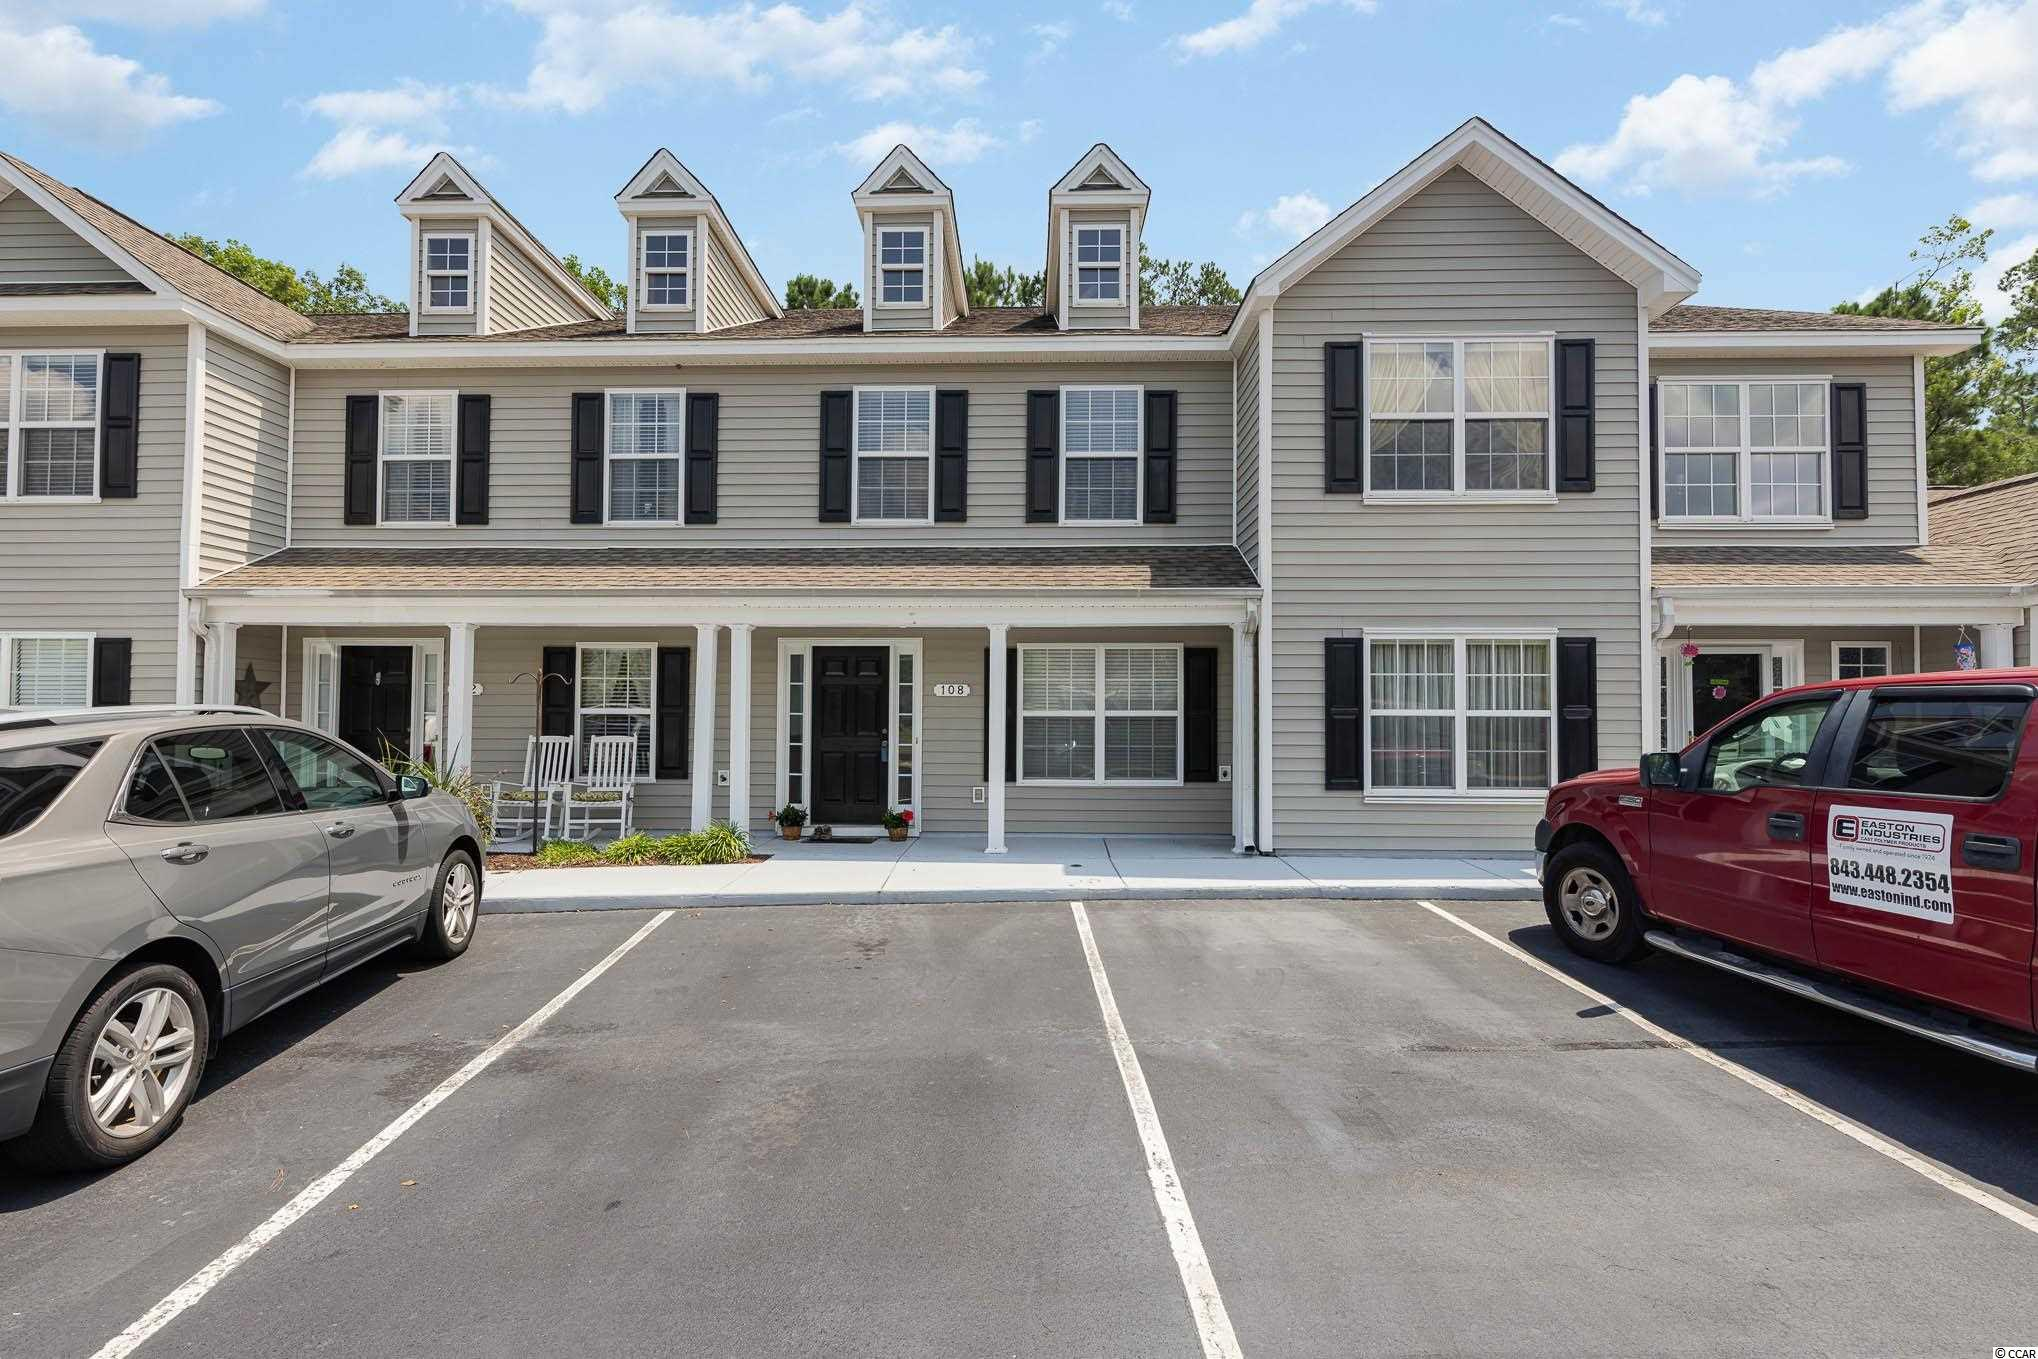 Located just minutes from beaches, shopping, and major access roads, this perfectly laid-out townhome is a gem!  On the first floor, you have a formal dining room, spacious open kitchen, and a living room with plenty of natural light from the sliding glass doors that lead out to your private screened in porch. A half-bathroom downstairs is convenient for guests, and upstairs you have two bedrooms that boast en-suite bathrooms.  The largest of the two bedrooms has dual closets and an en-suite bathroom with a double-sink vanity and garden tub. Upstairs laundry, additional outside storage, and assigned parking are just some of the features this townhome has to offer! Come take a look today!